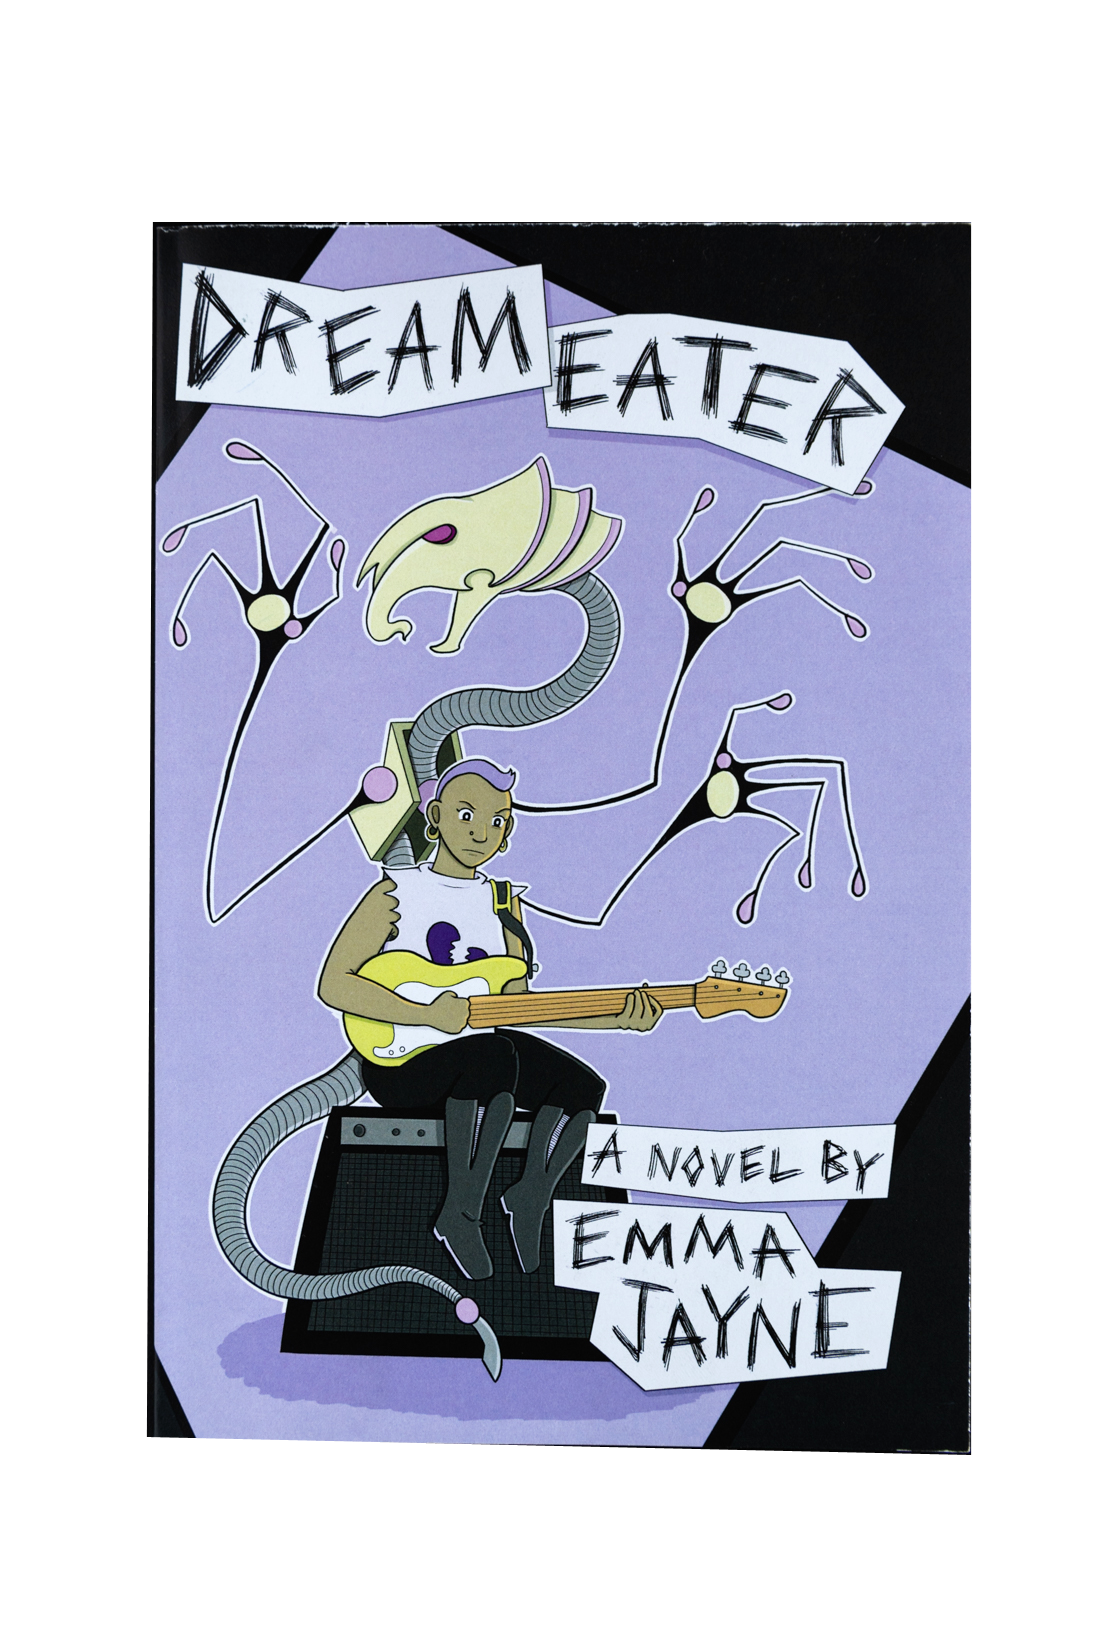 Dreameater by Emma Jayne